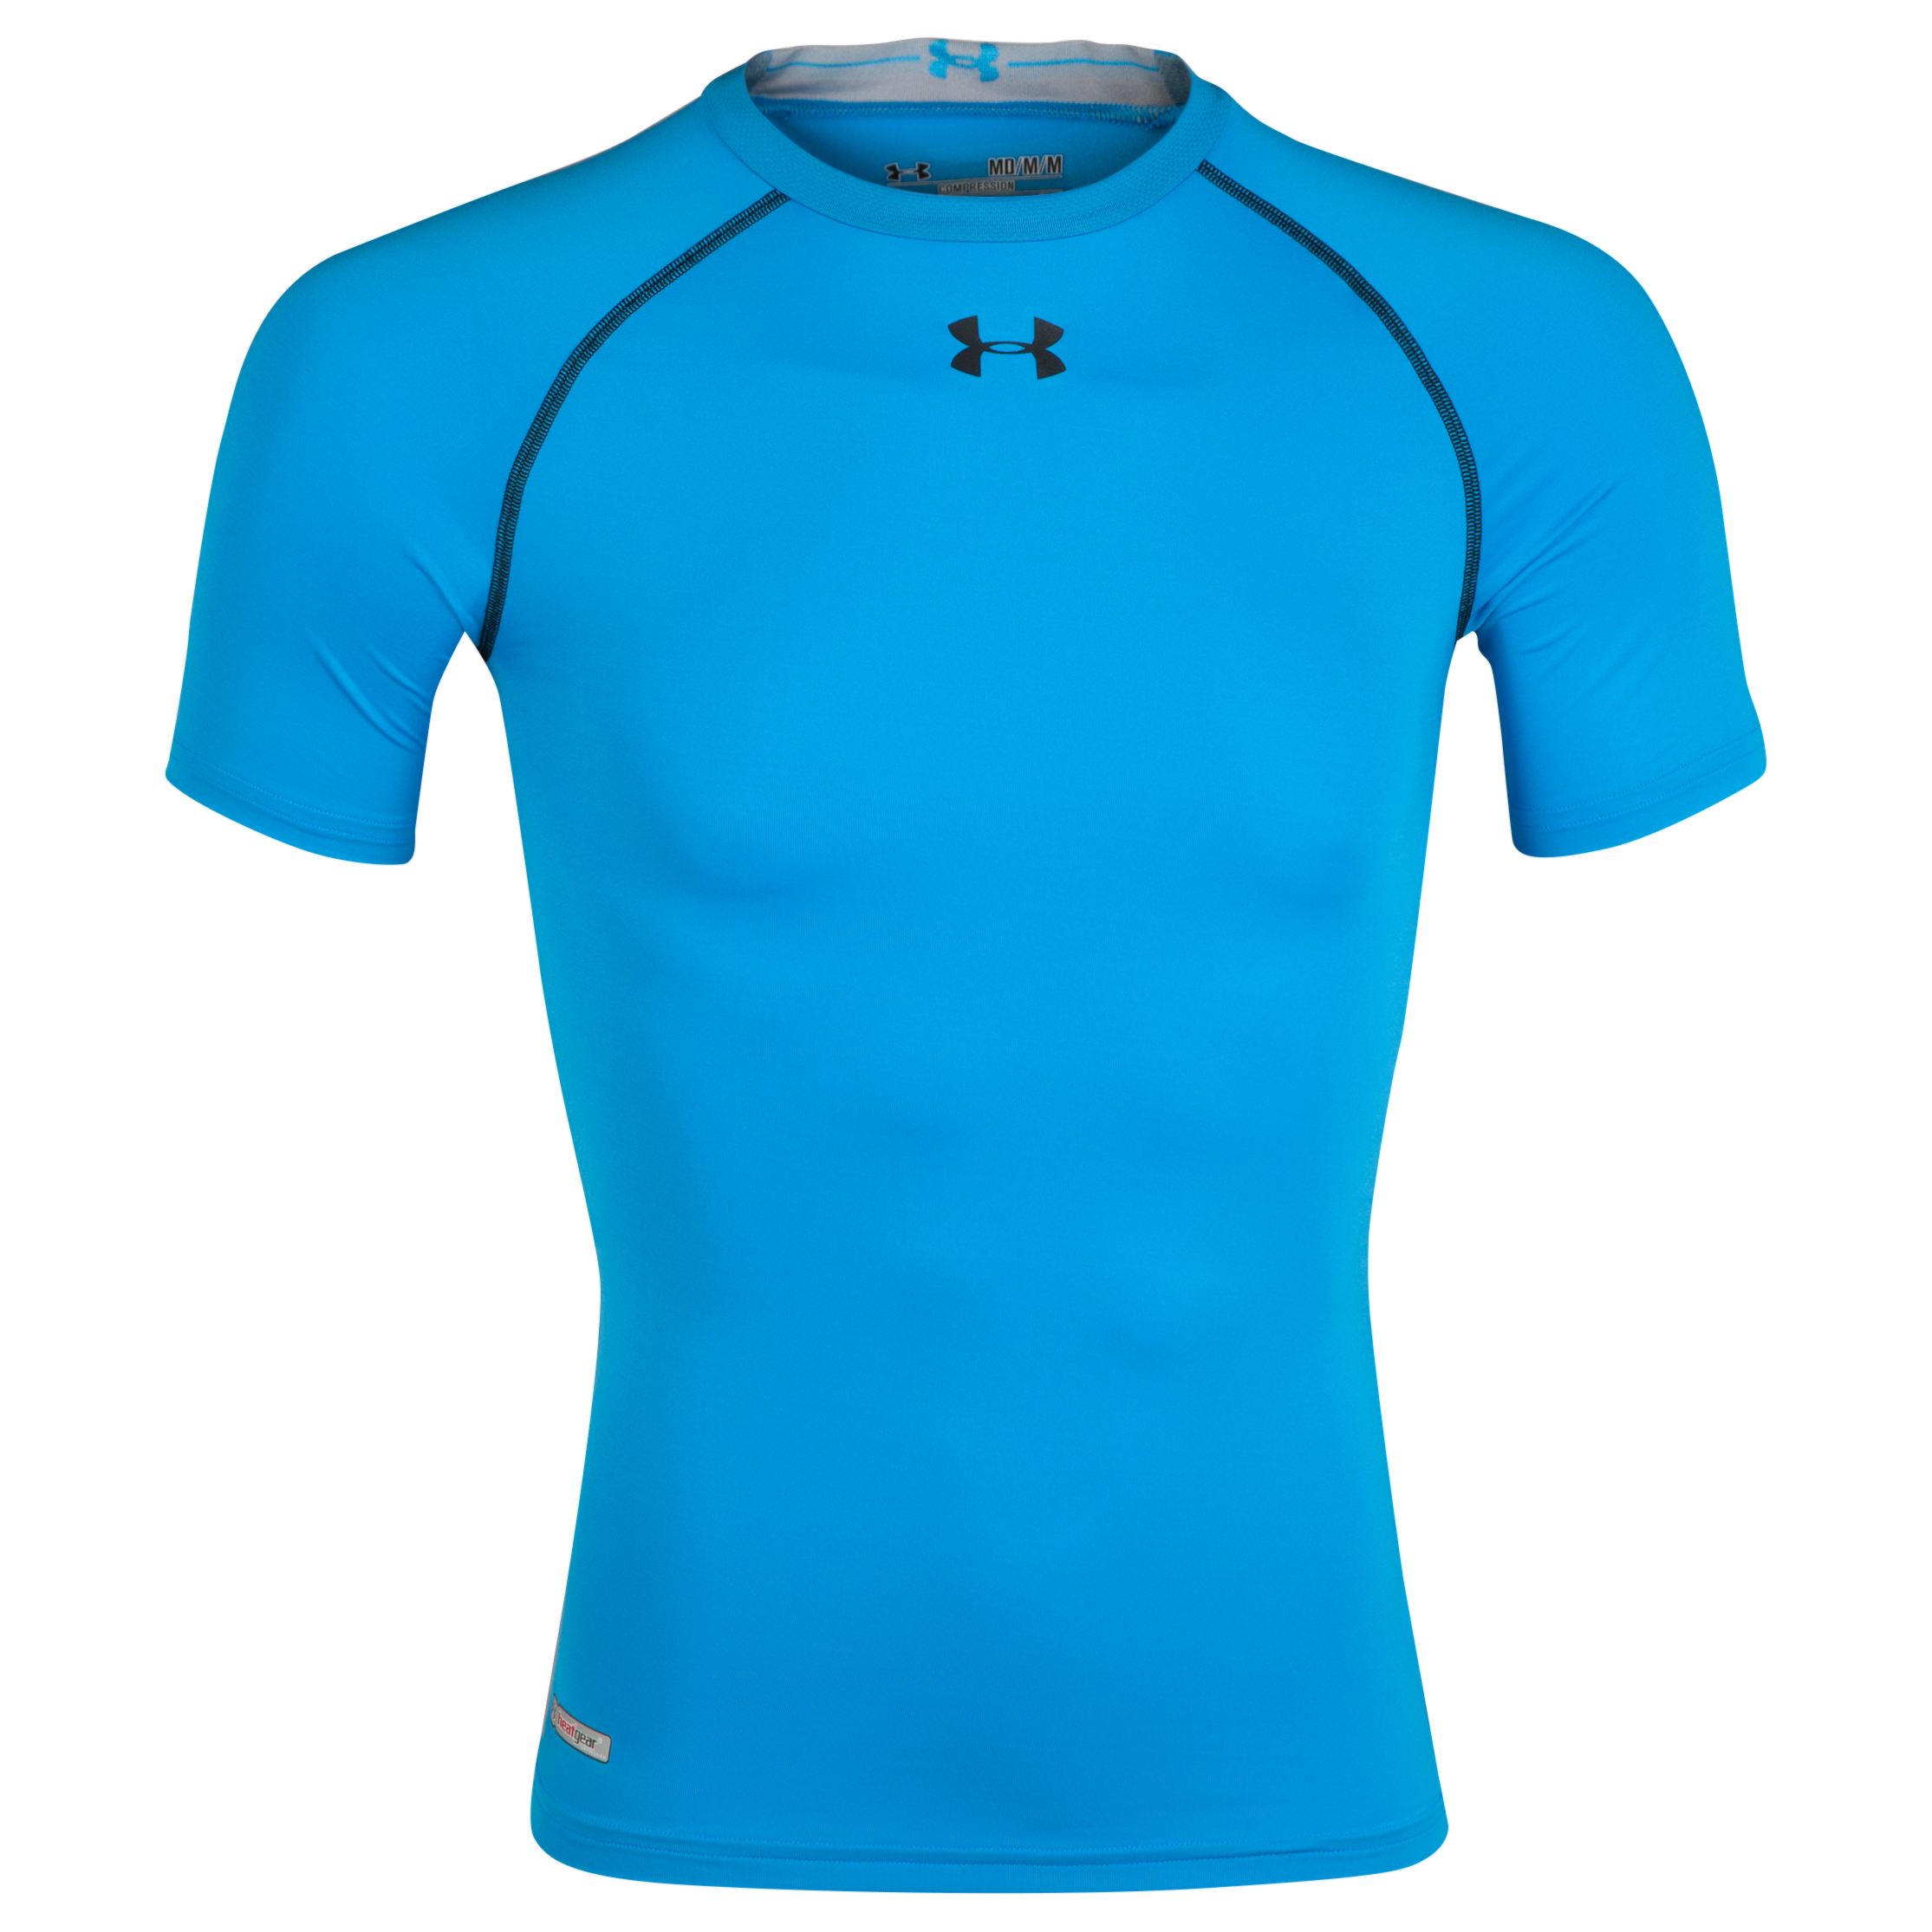 Under Armour Heatgear Sonic Base Layer Top Blue